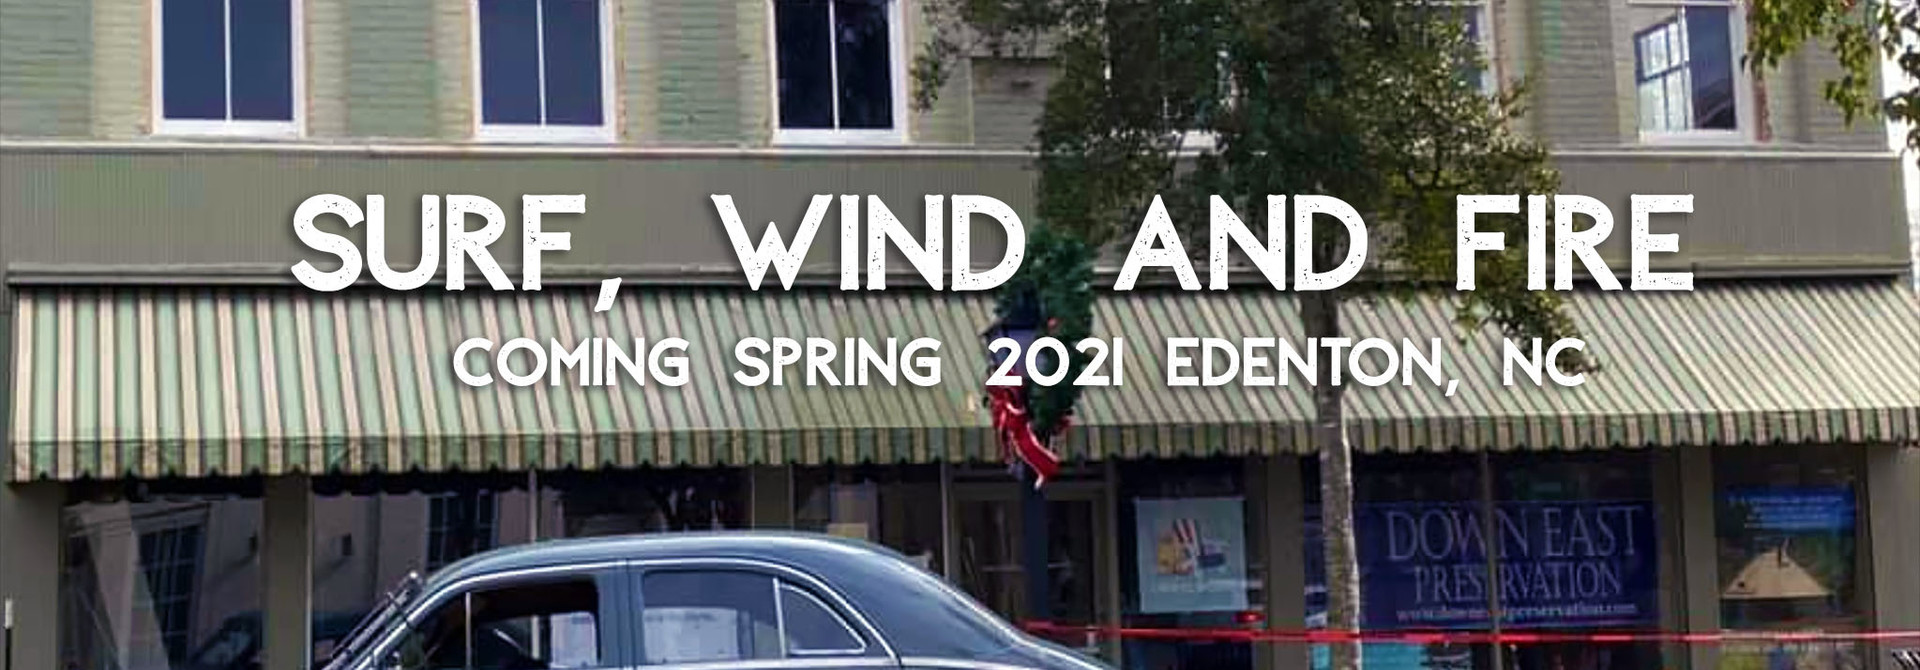 Surf, Wind and Fire in Edenton, NC